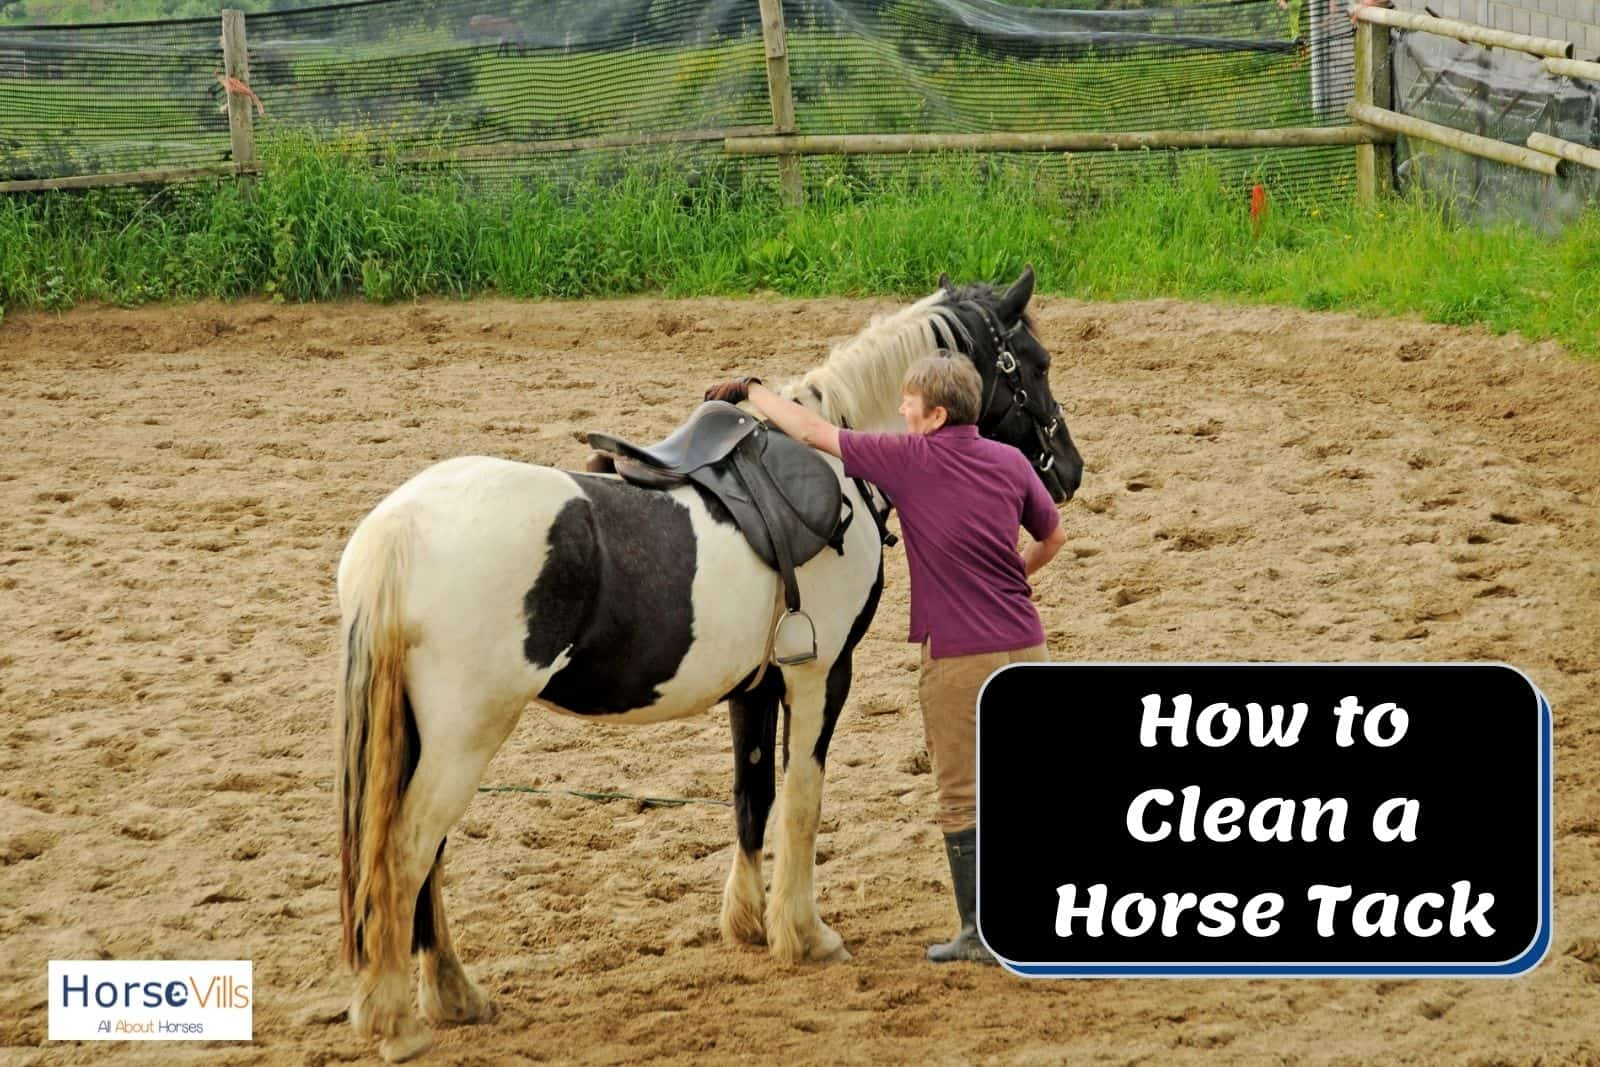 man in boots preparing to show how to clean a horse tack